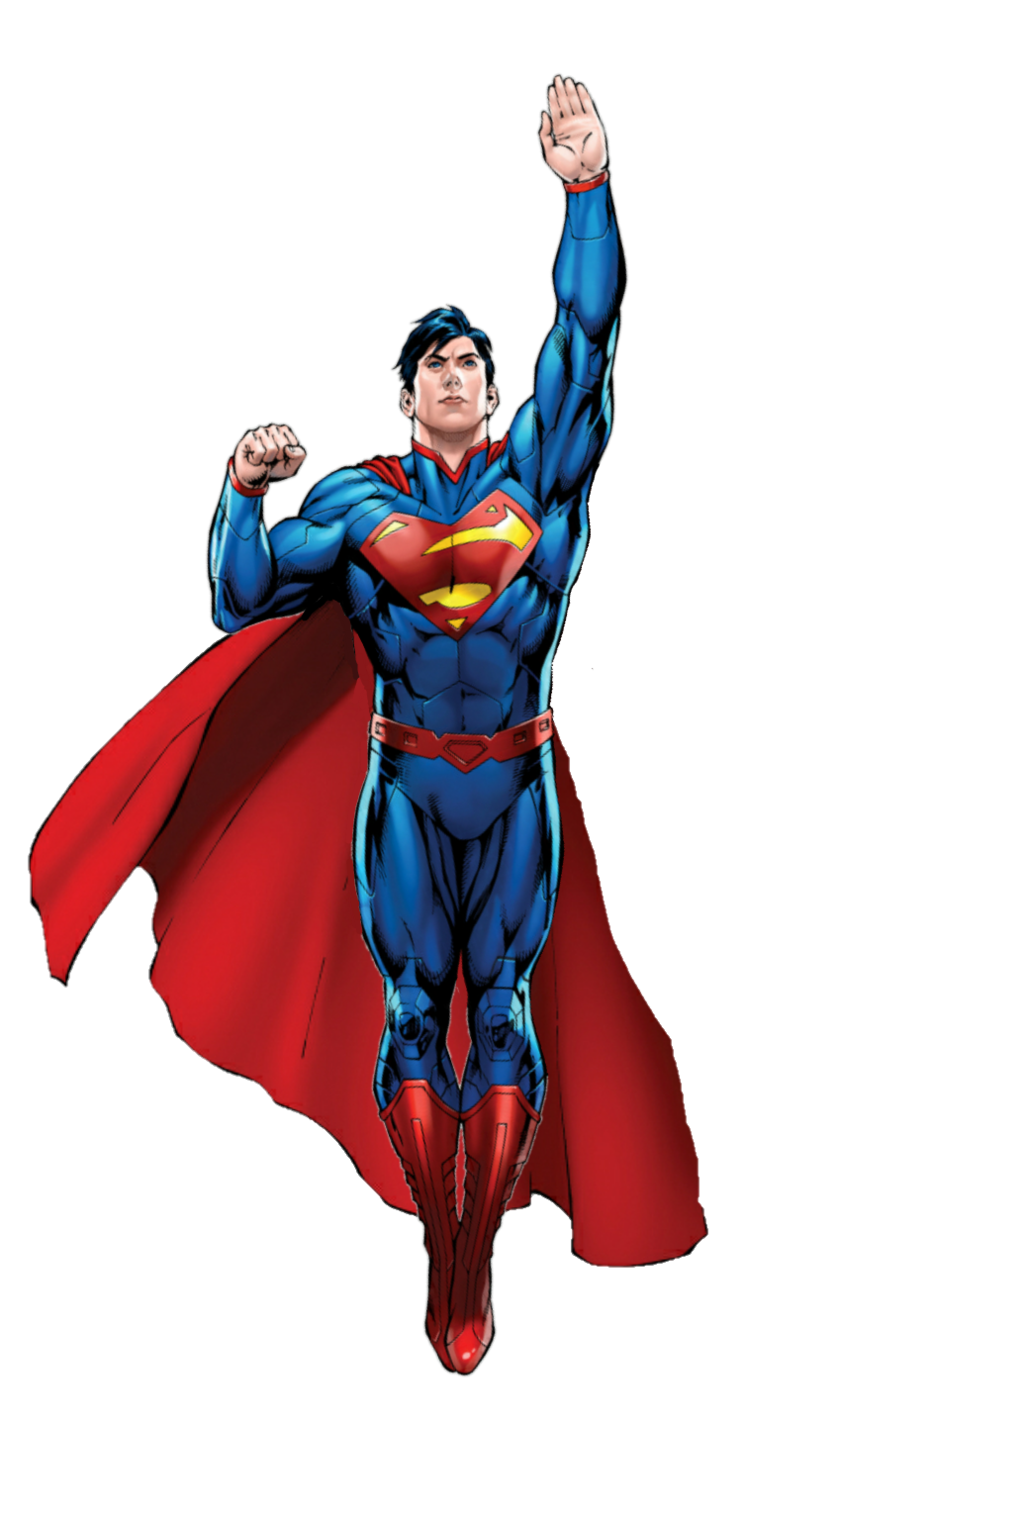 Free high resolution comic book clipart clip art library download Superman PNG Pic | PNG Mart clip art library download